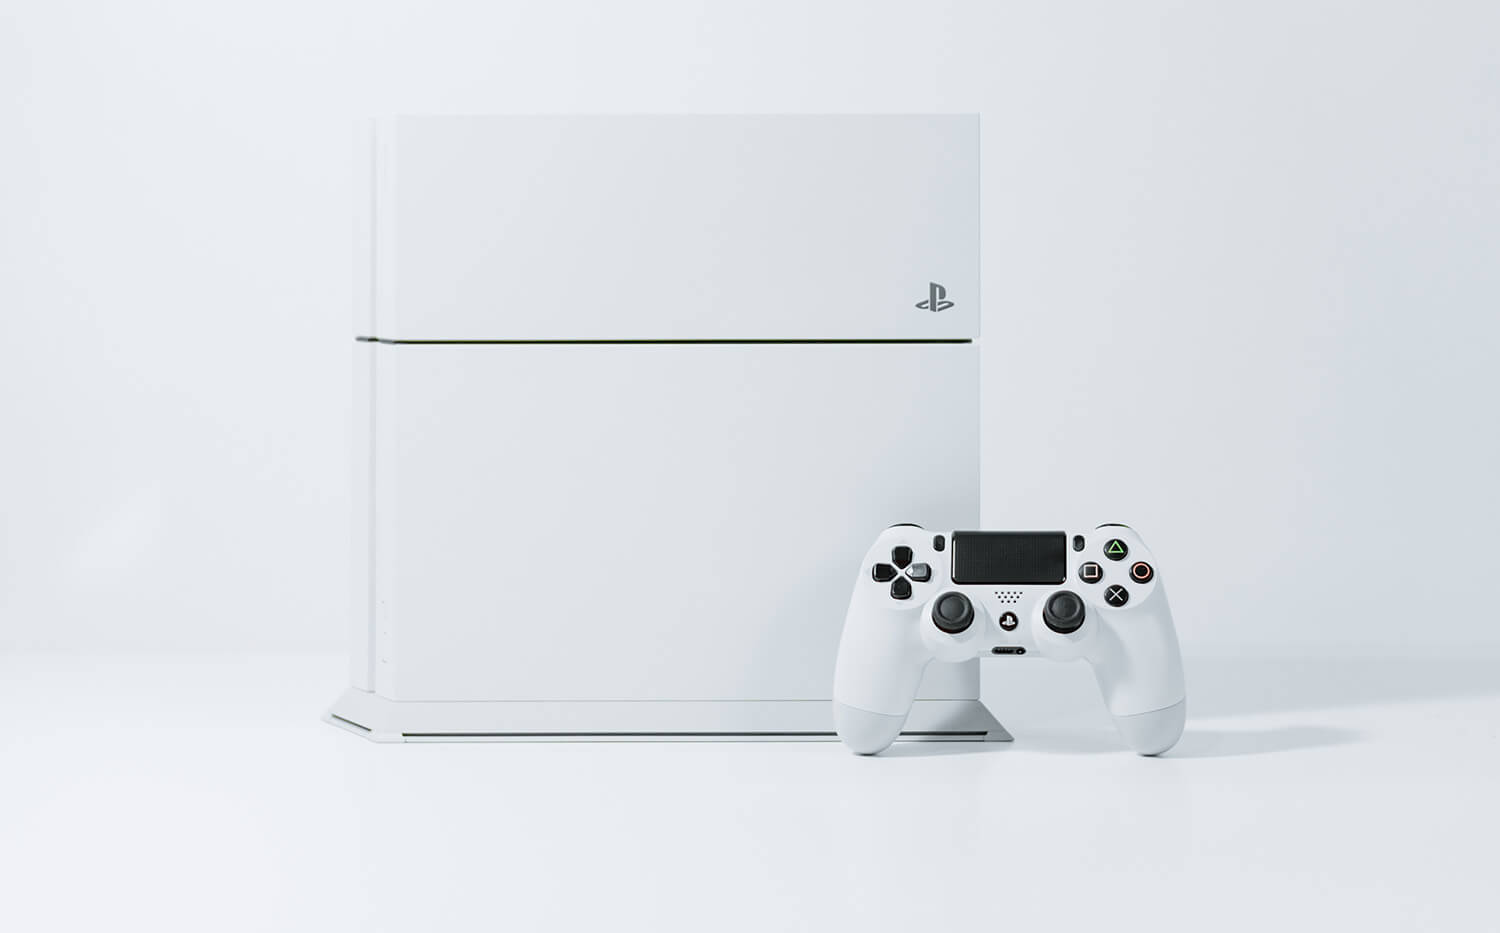 Sony PS4 gaming console